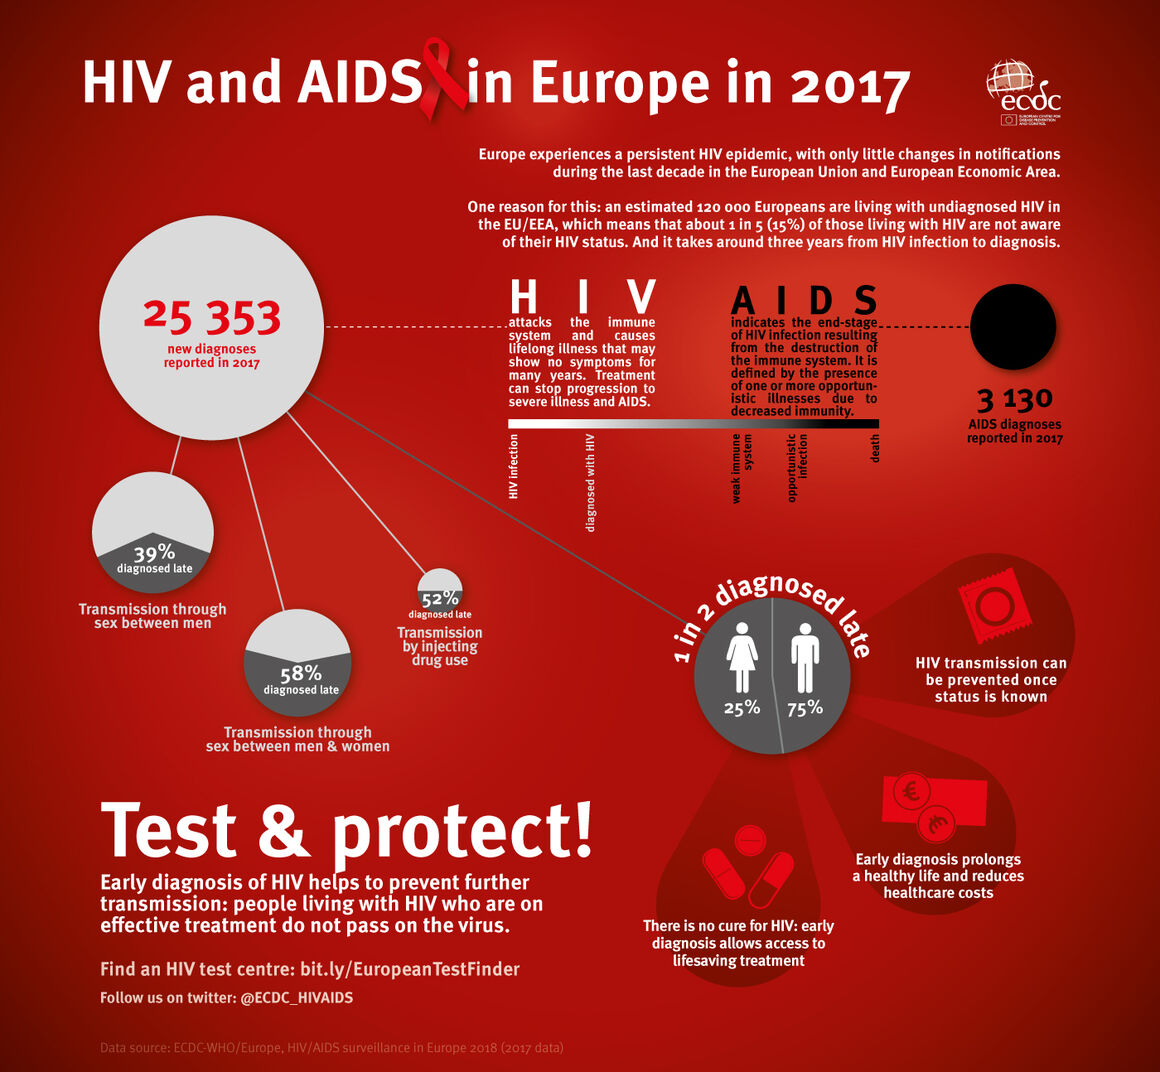 HIV and AIDS in Europe 2017